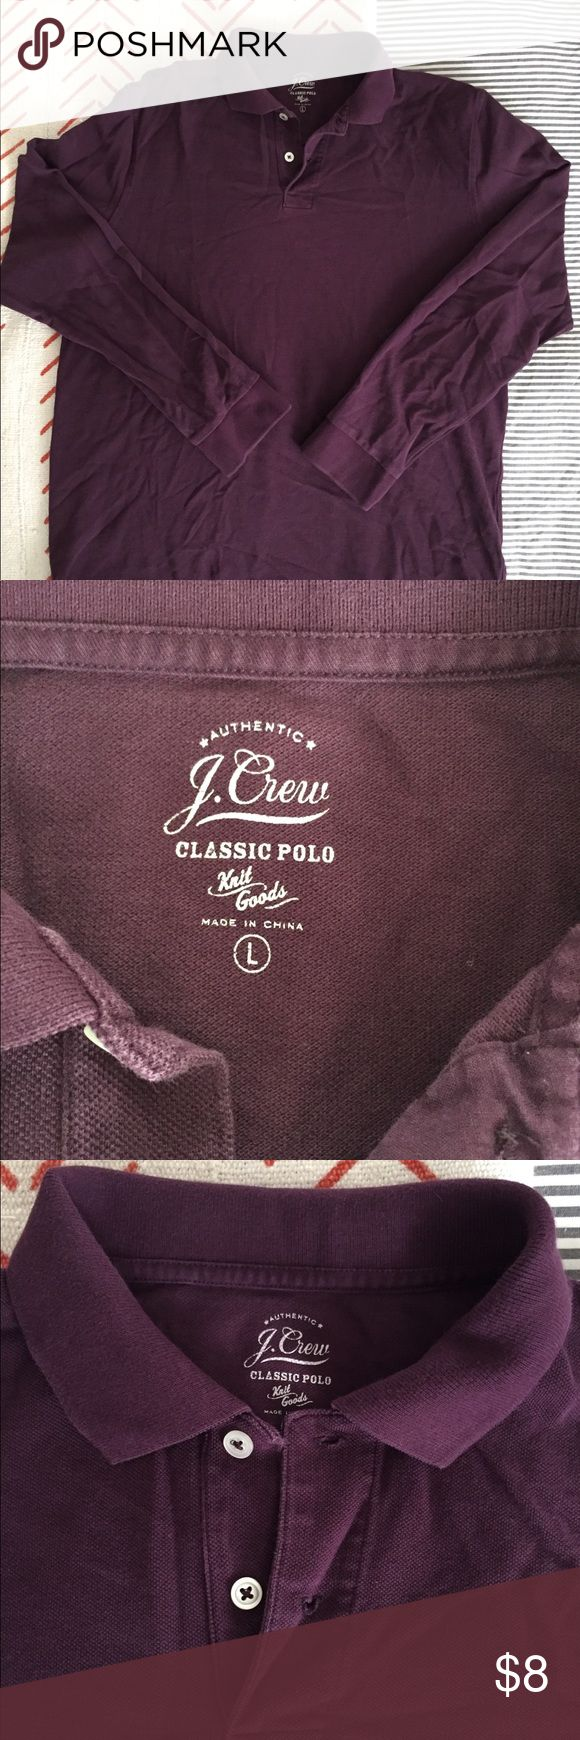 J. Crew men's size large purple polo shirt Barely worn, very clean men's J. Crew Classic Polo shirt in dark purple. Size Large. Long sleeves. No stains. Style was meant to have washed and worn look when new. Classic fit, not cut slim. Actual shirt color matches the darker photos shown. Non smoking home. J. Crew Shirts Polos